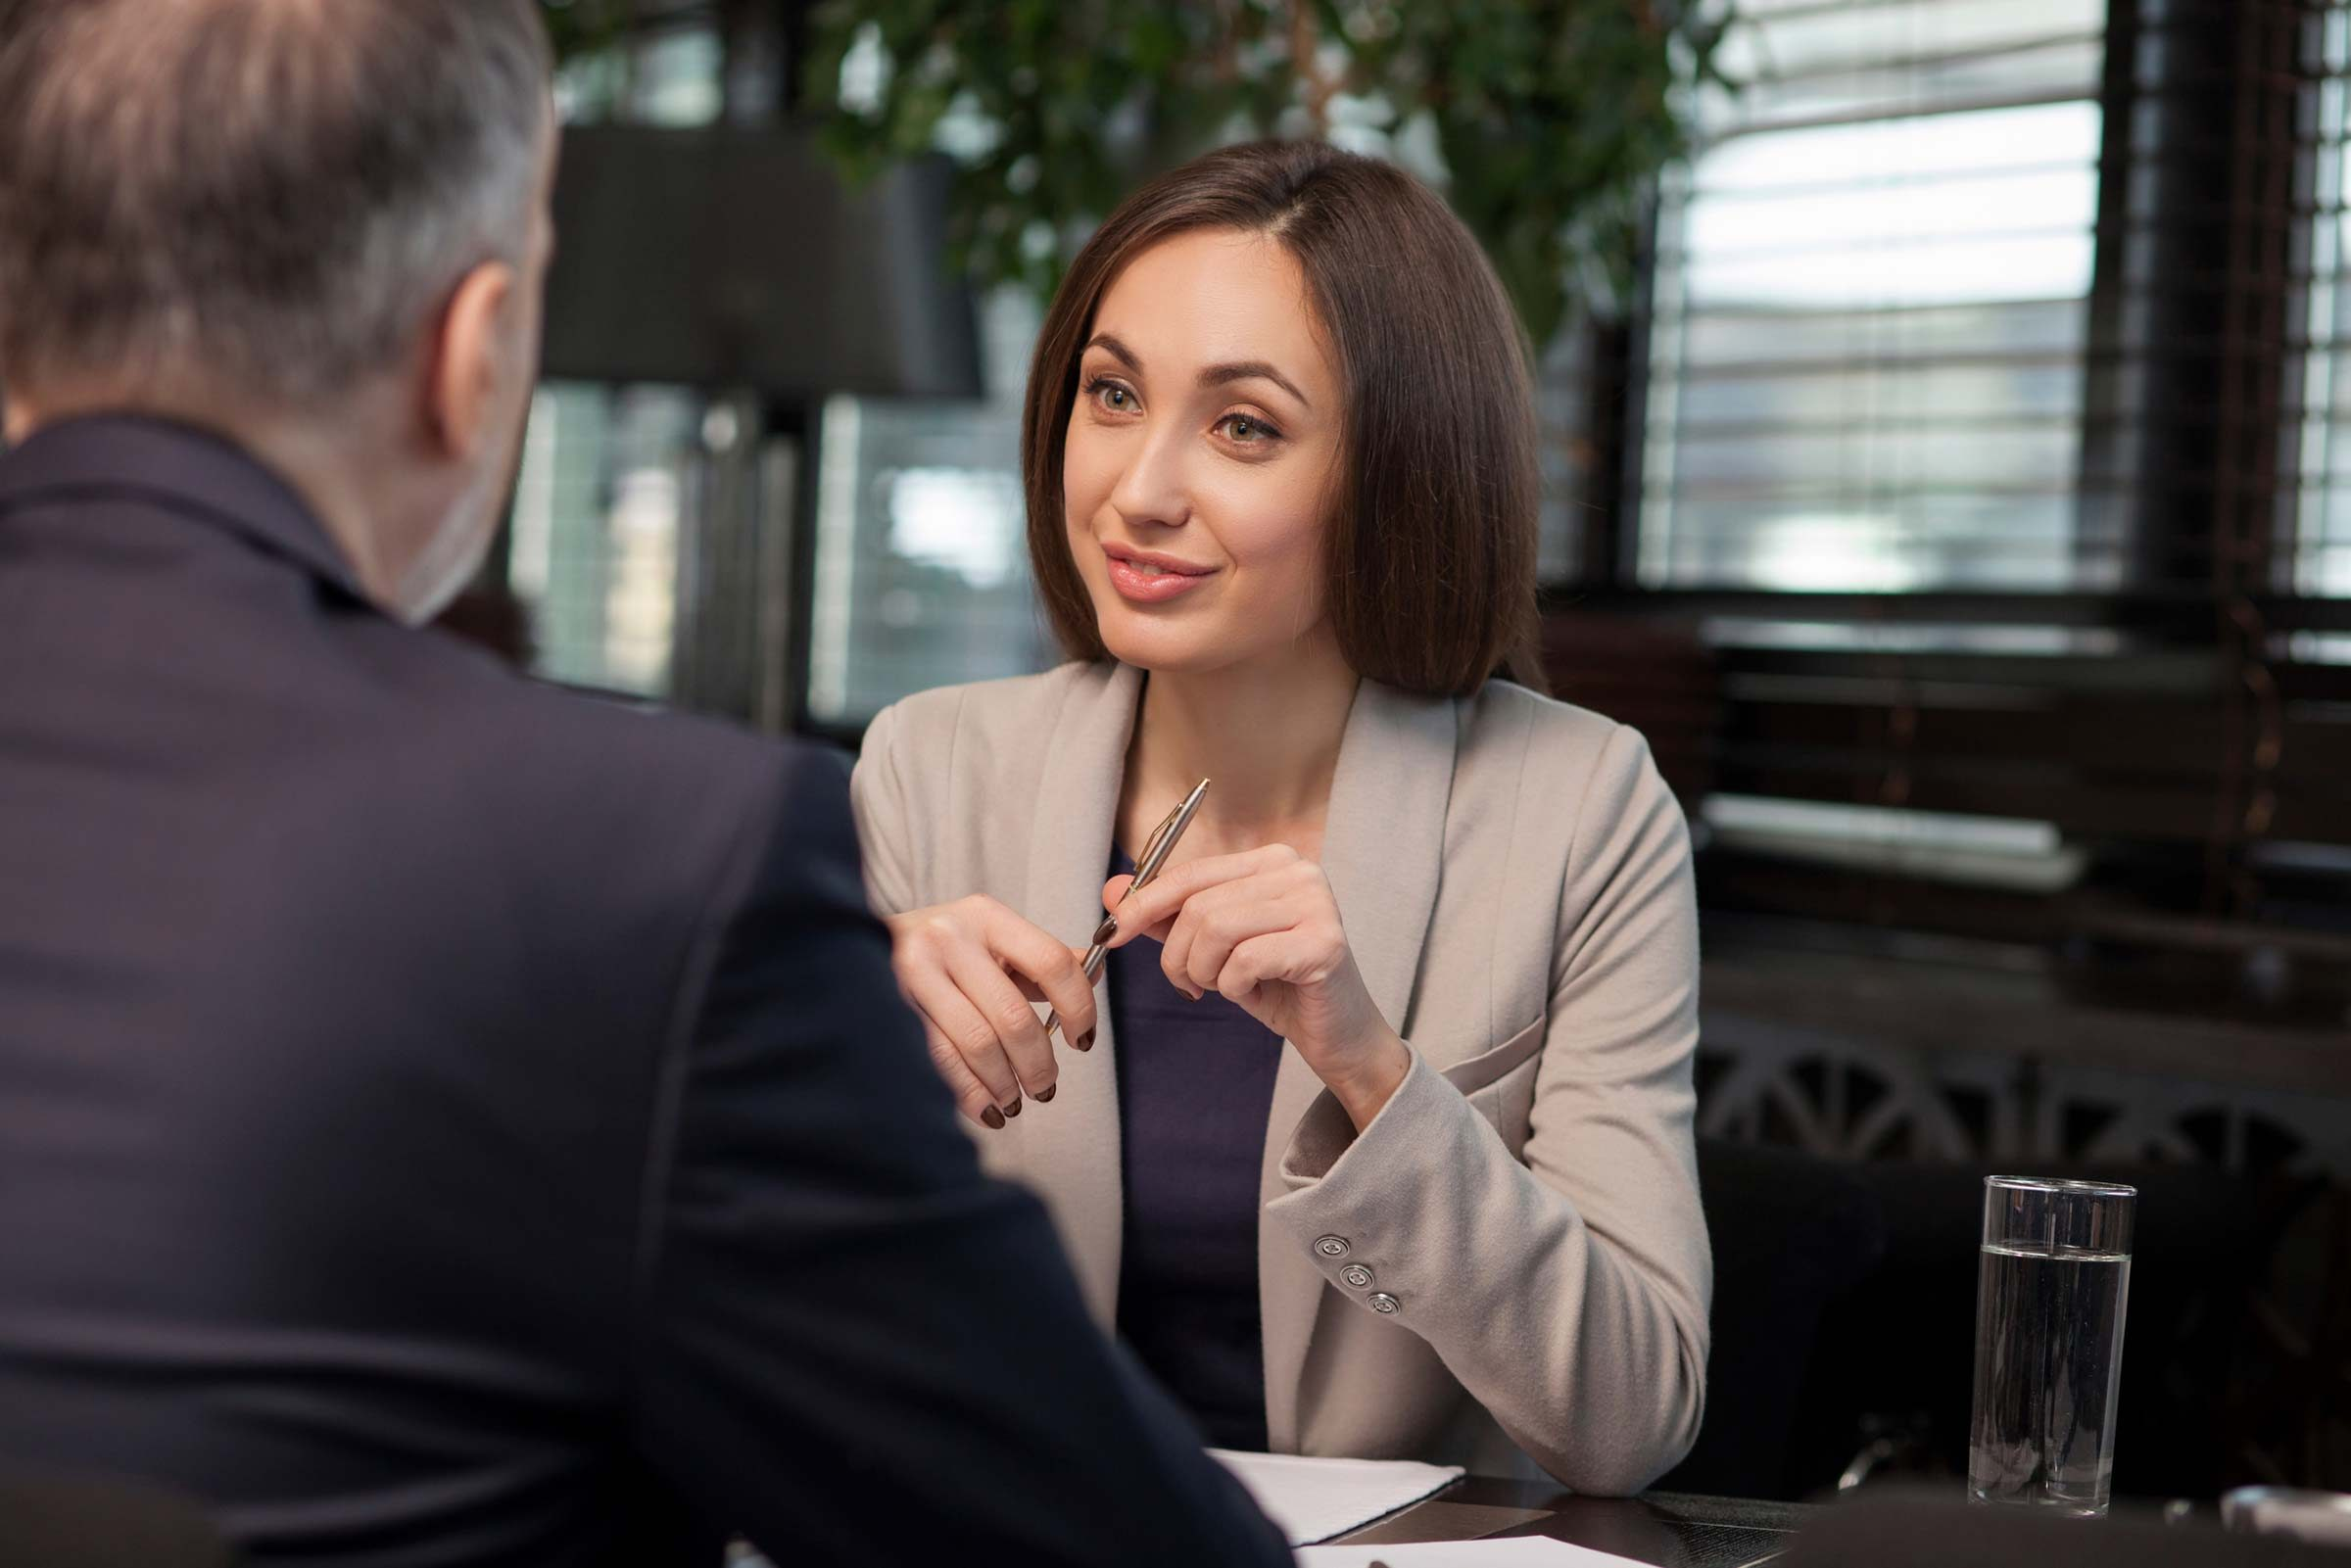 questions you should ask at a job interview reader s digest how do you see this position changing or growing in the next few years